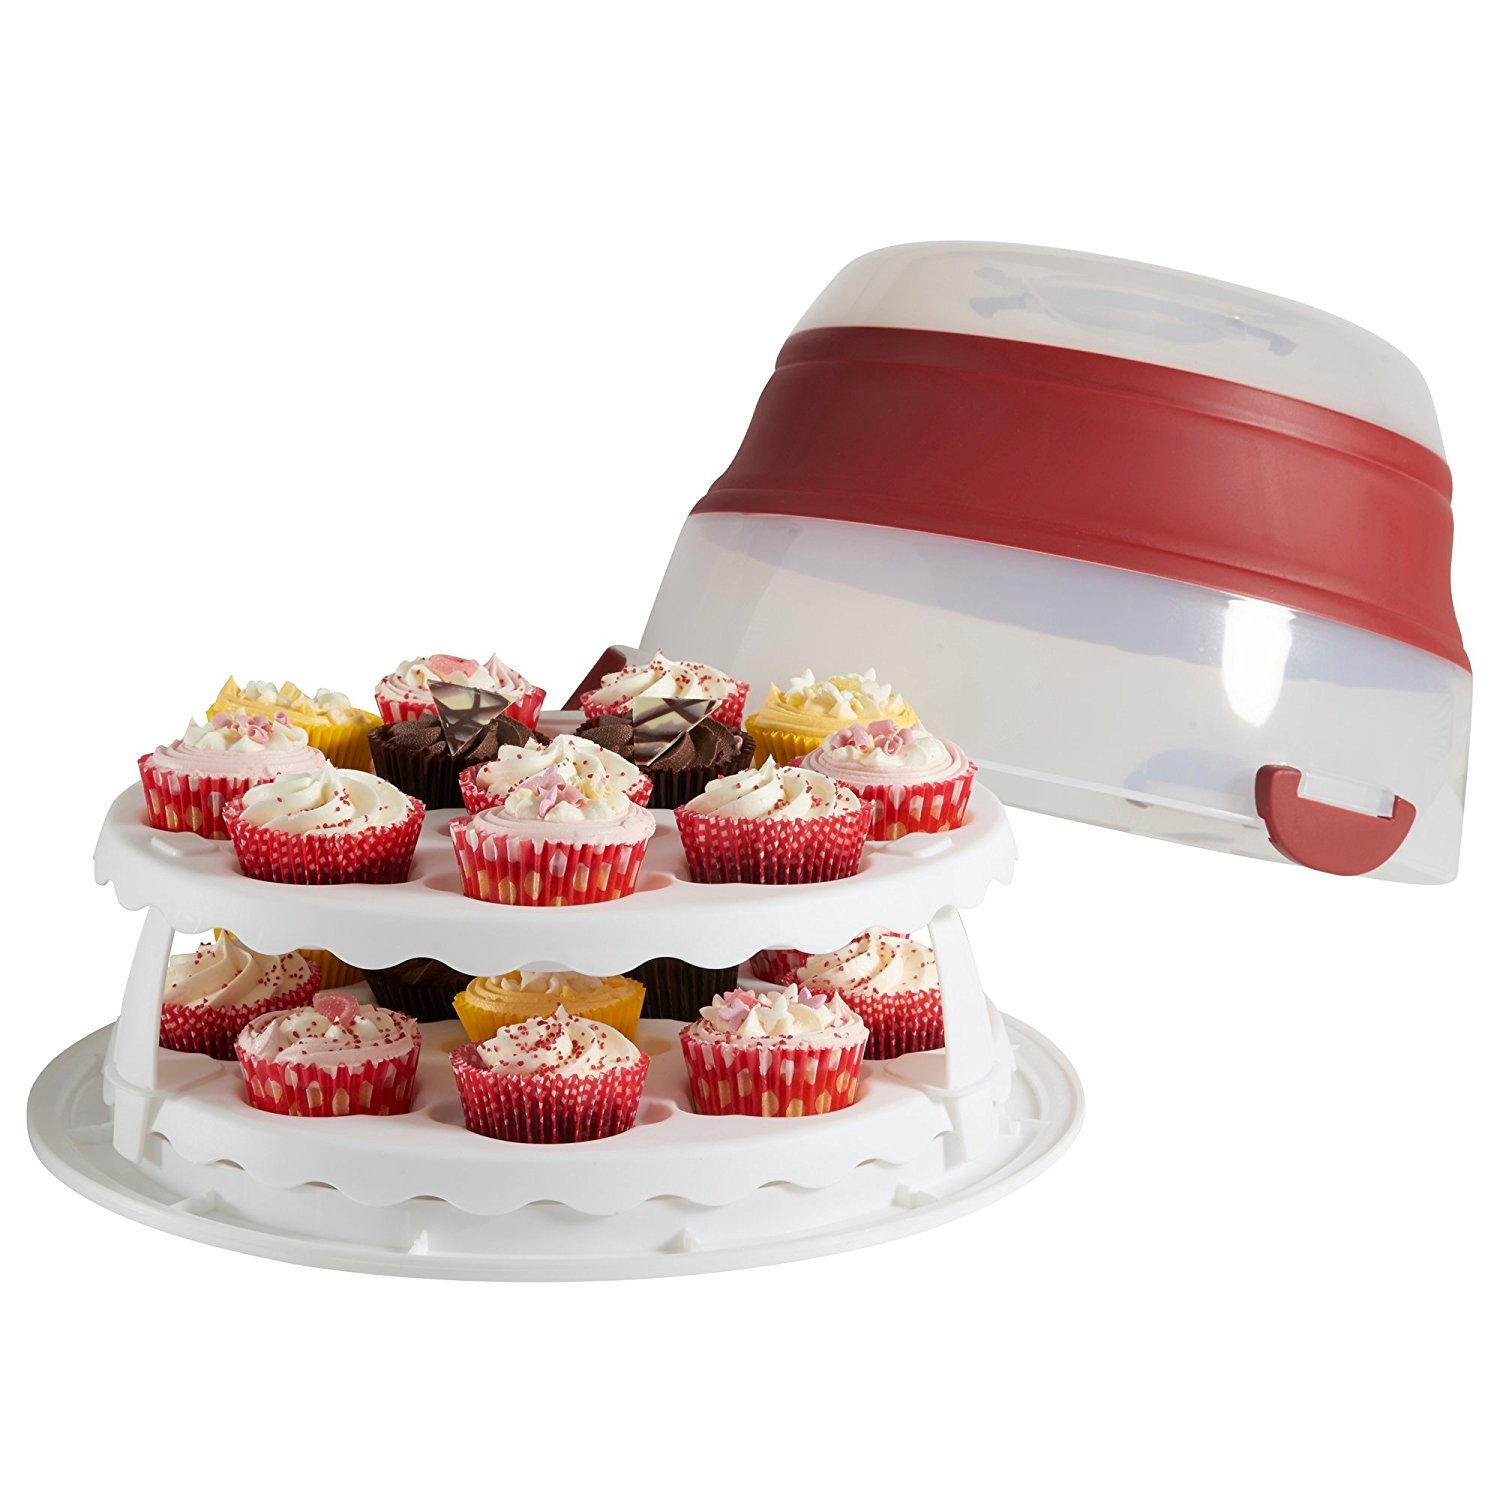 Collapsible Cupcake and Cake Carrier, Holds up to 24 cupcakes / Round or Square cakes, Size; 40cm diameter and 12.7cm when collapsed – Silicone – Red by MisterChef®